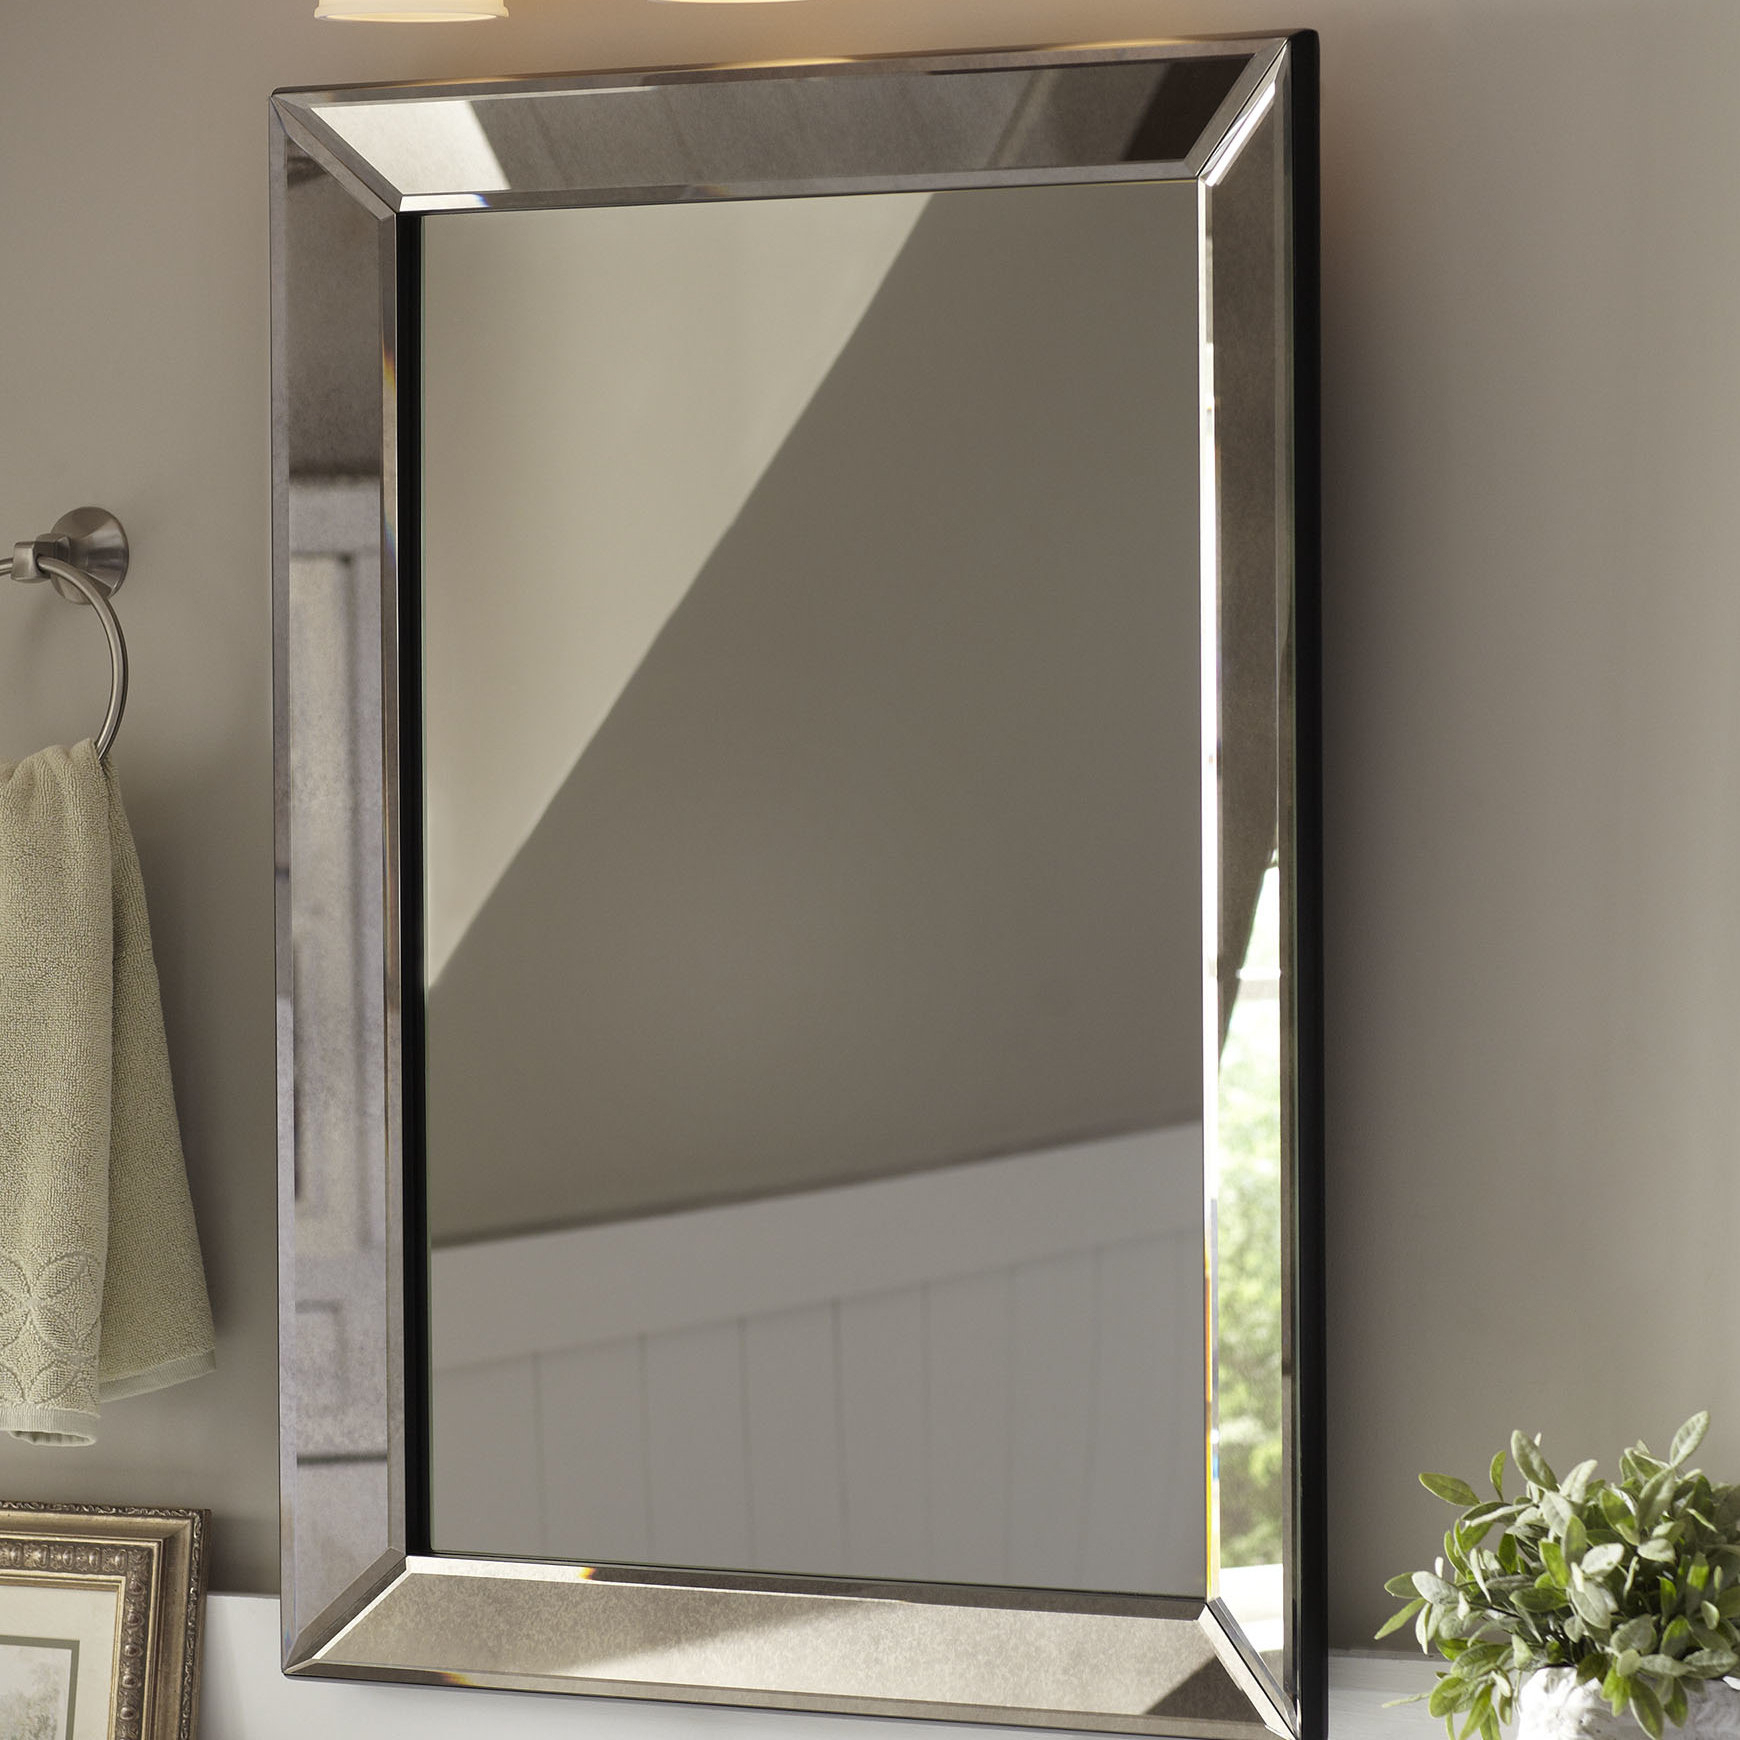 Farmhouse Mirrors | Birch Lane Pertaining To Traditional Square Glass Wall Mirrors (View 21 of 30)